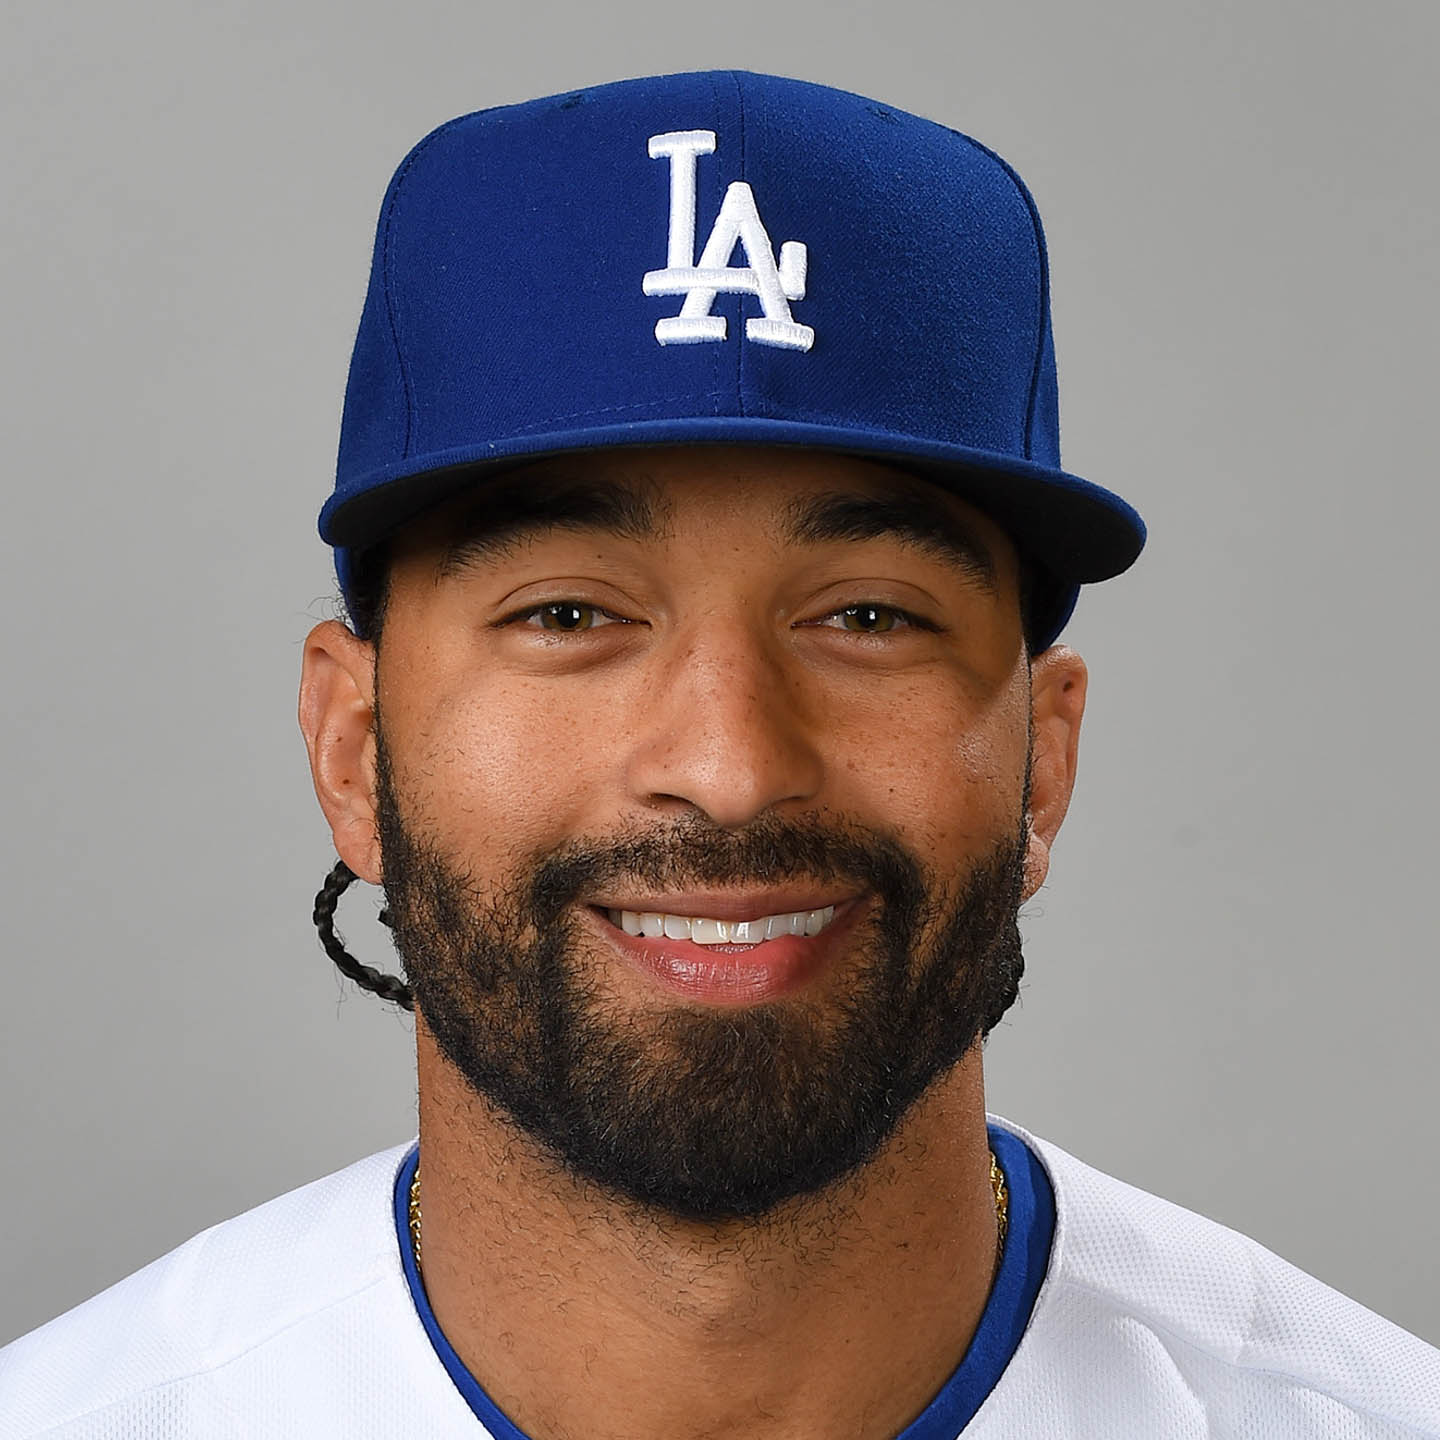 Matt Kemp (R) Headshot